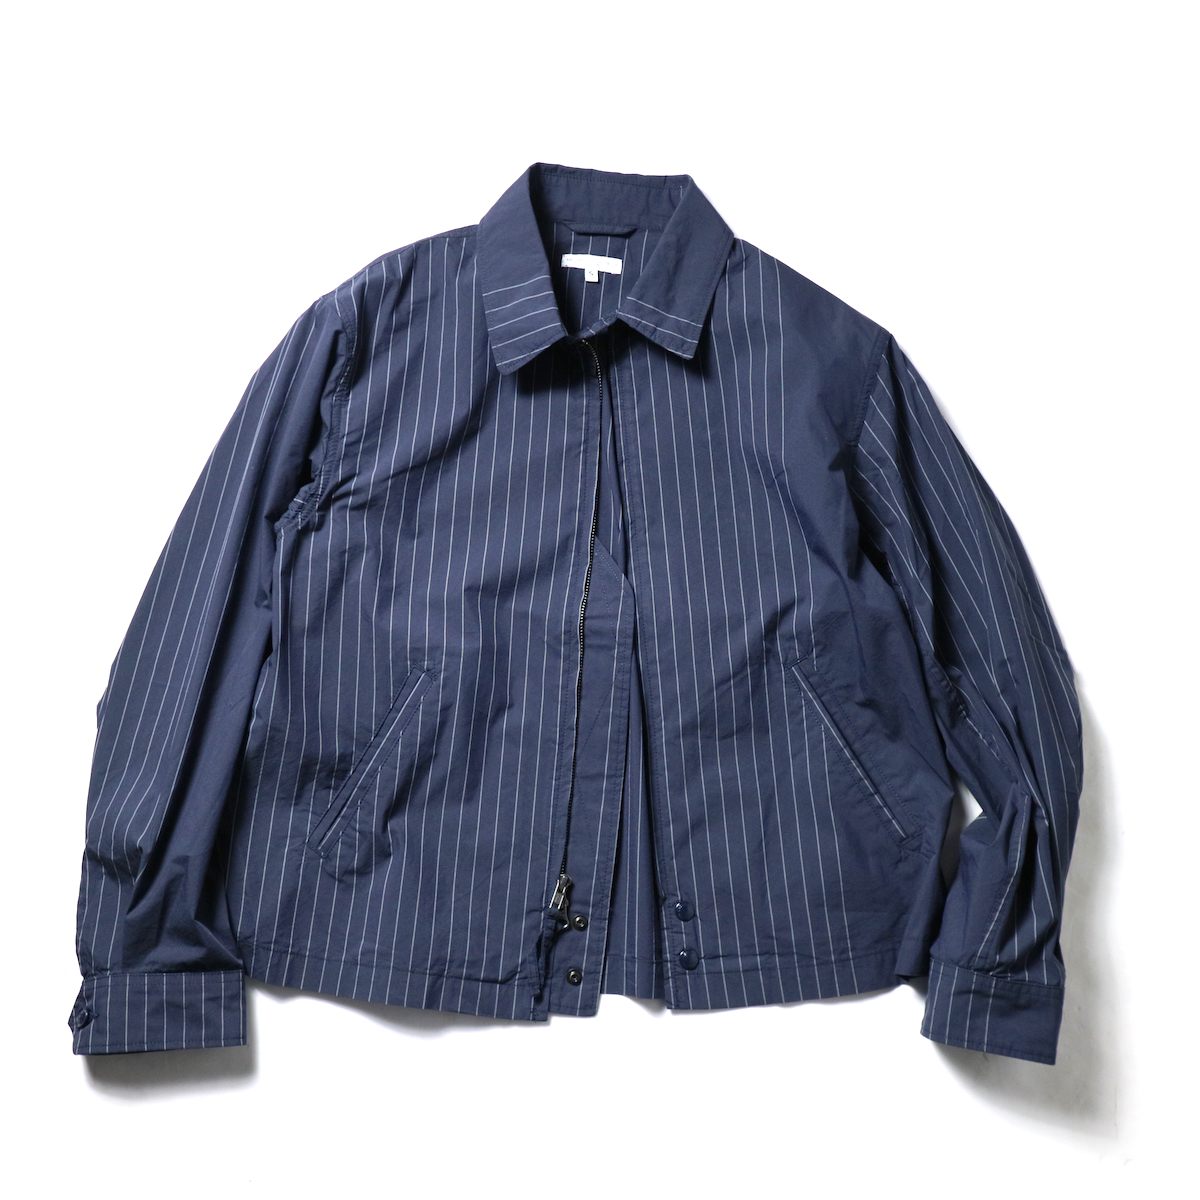 Engineered Garments / Claigton Jacket - Nyco Gangster Stripe (Dk.Navy)正面